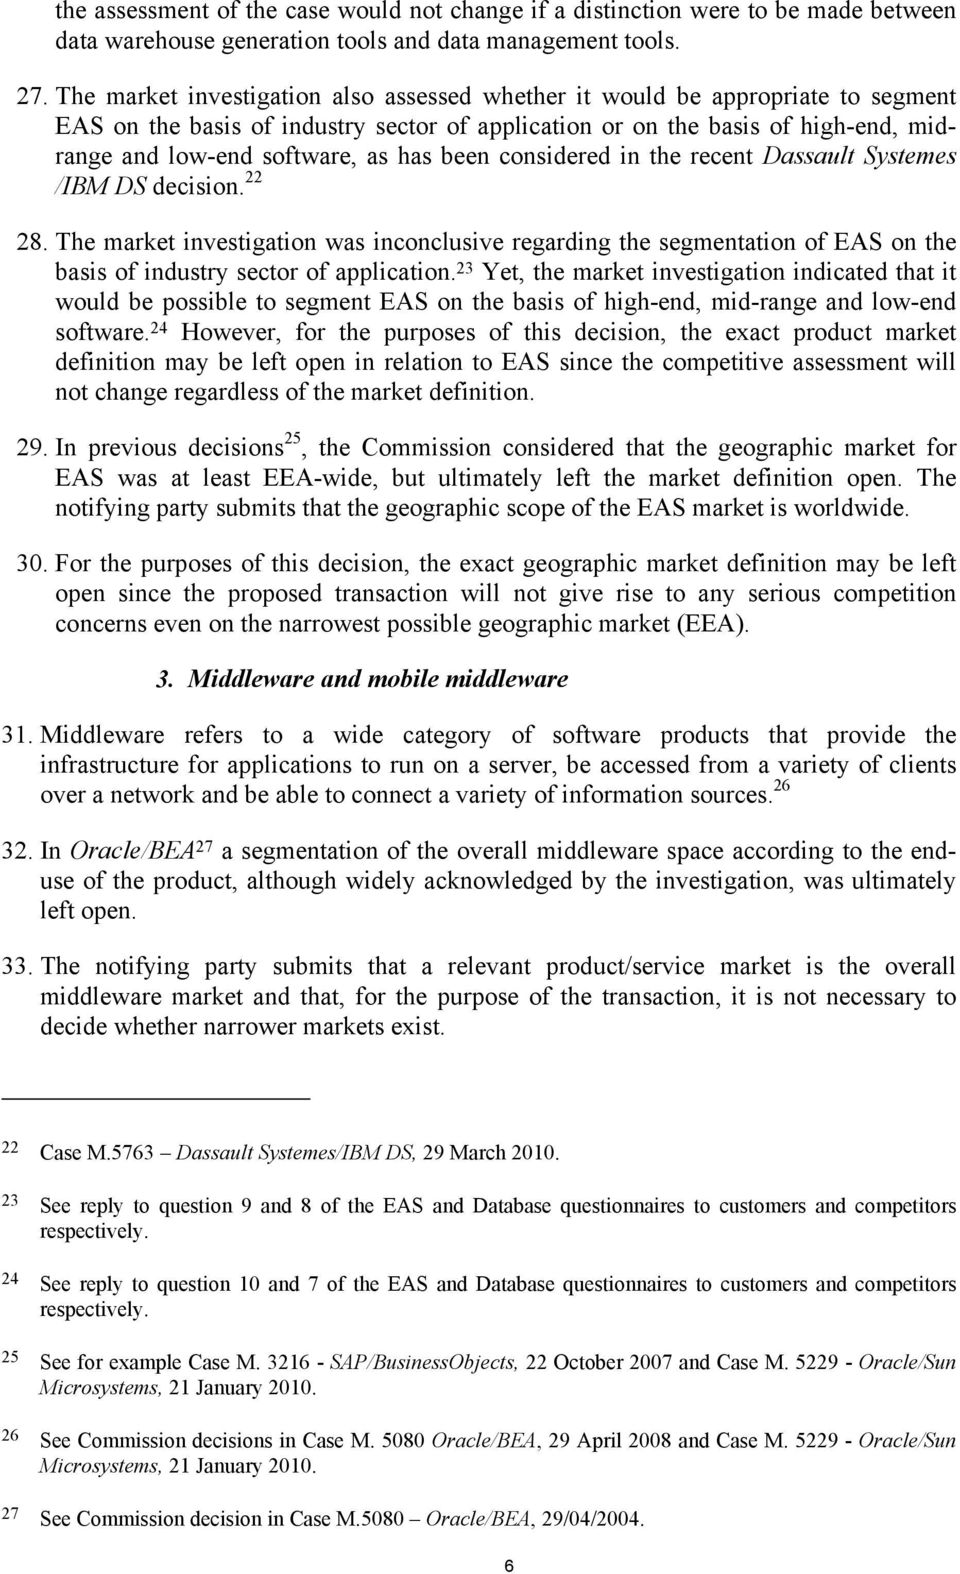 been considered in the recent Dassault Systemes /IBM DS decision. 22 28. The market investigation was inconclusive regarding the segmentation of EAS on the basis of industry sector of application.